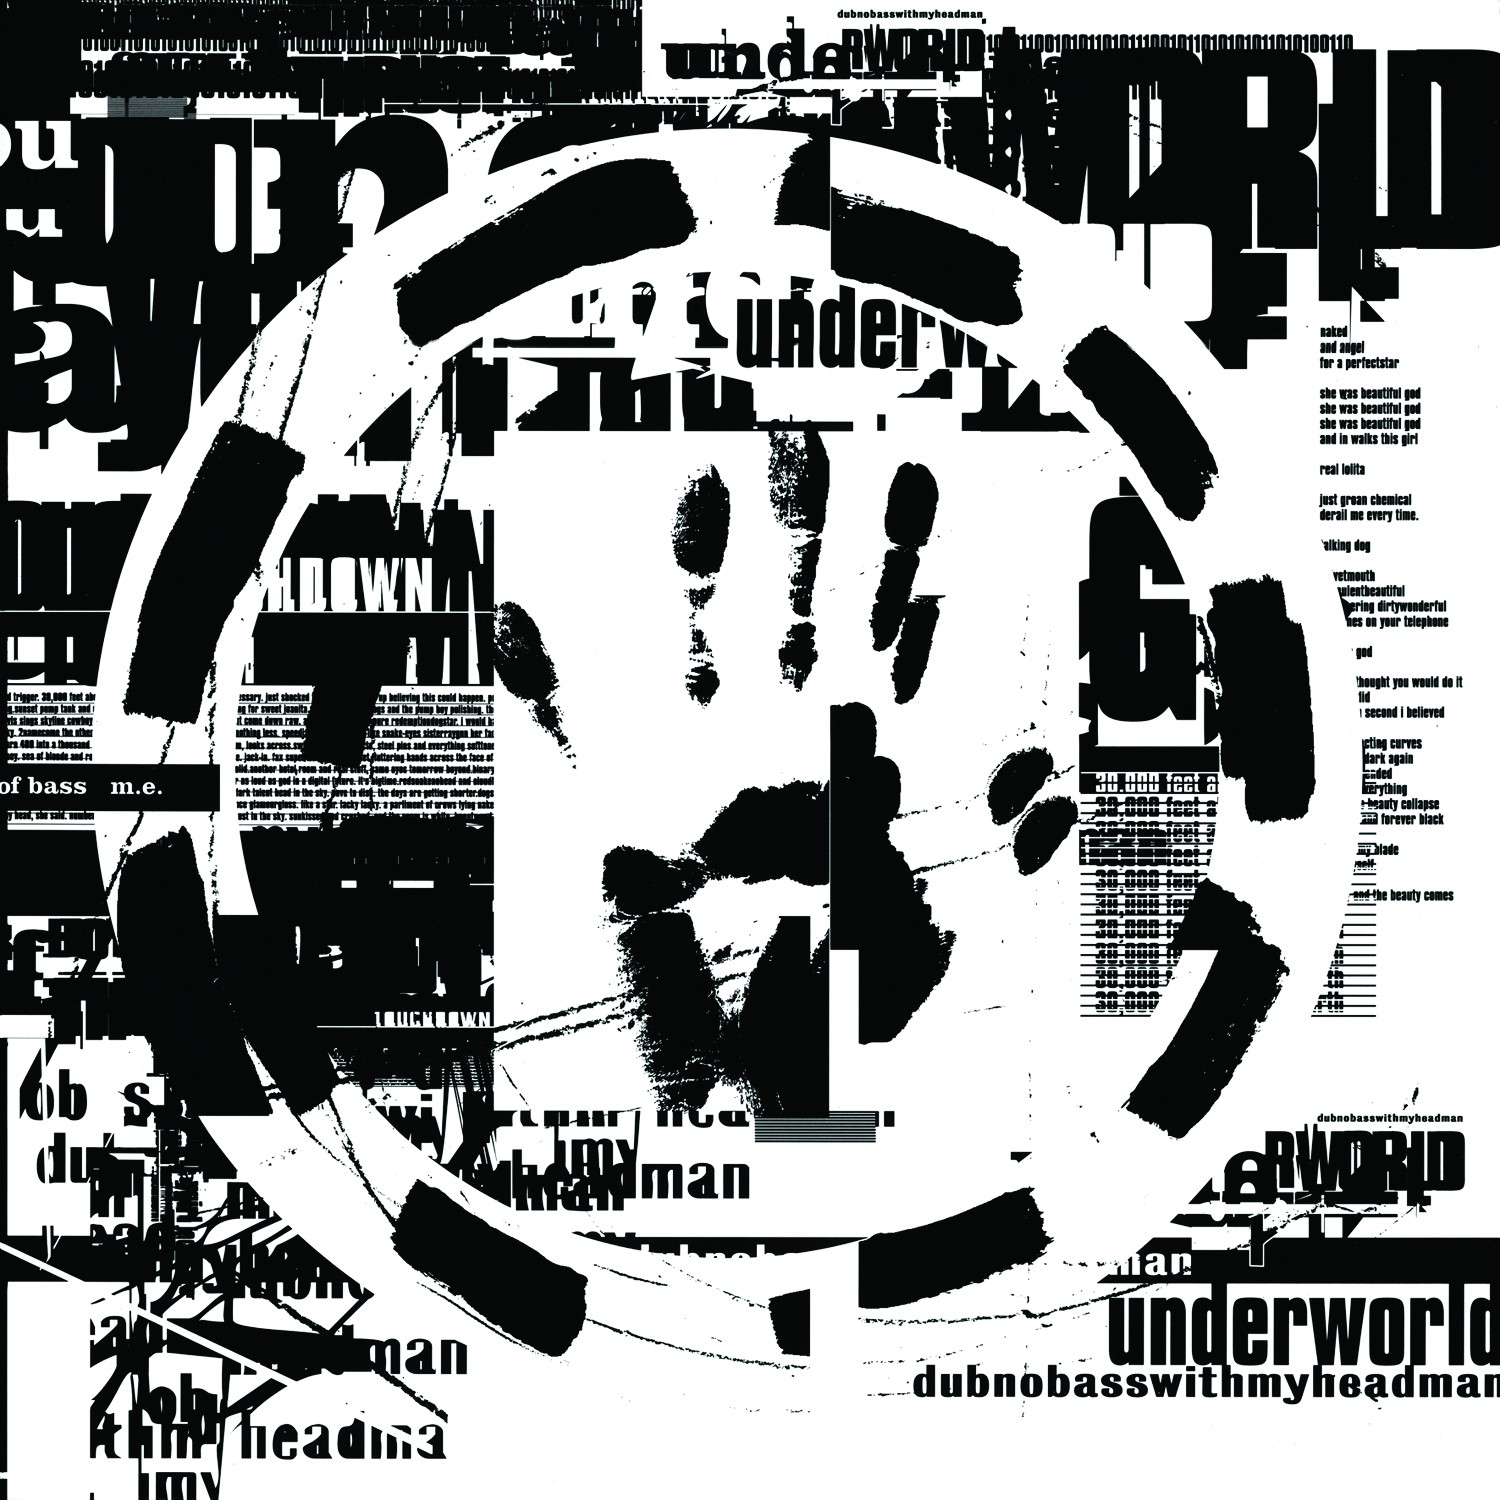 On A Razor's Edge: The Story Behind Underworld's Dirty Epic